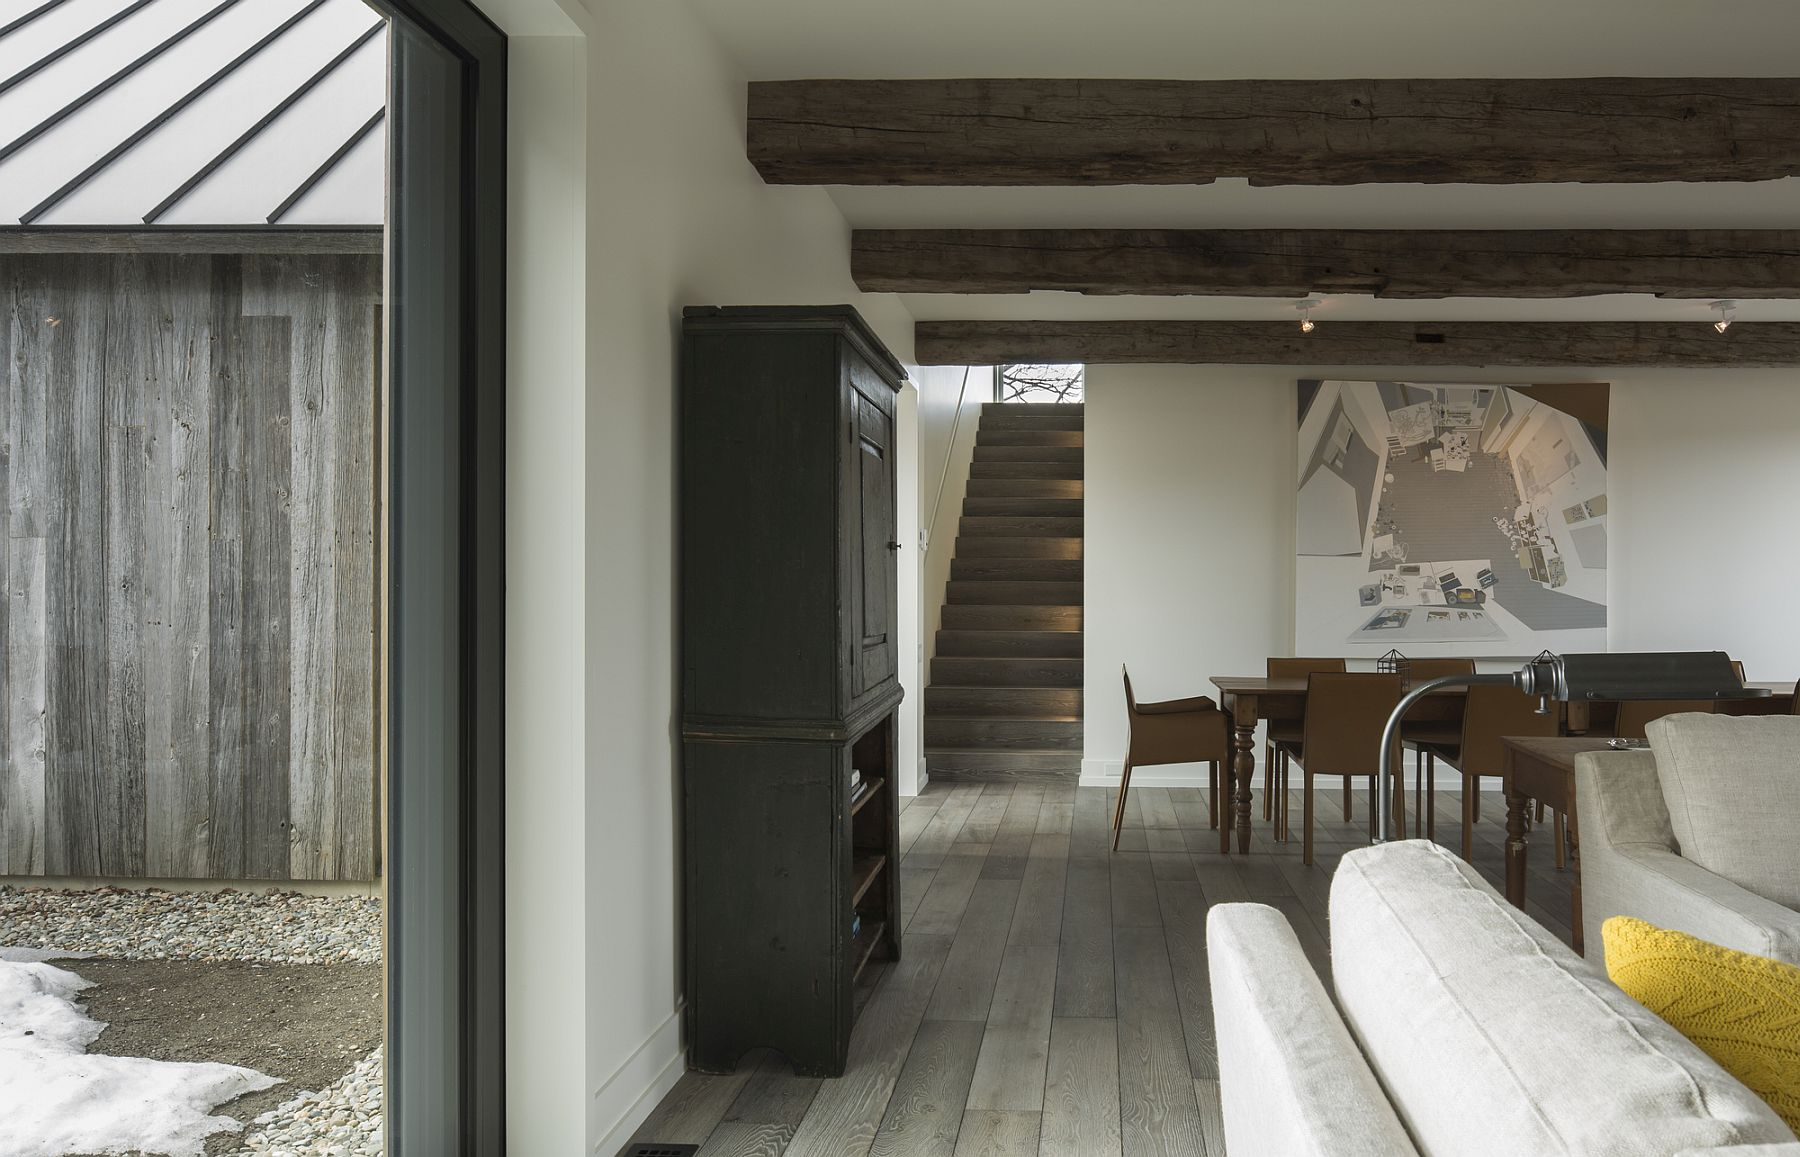 Large-windows-exposed-wooden-beams-and-a-neutral-color-palette-shape-the-living-area